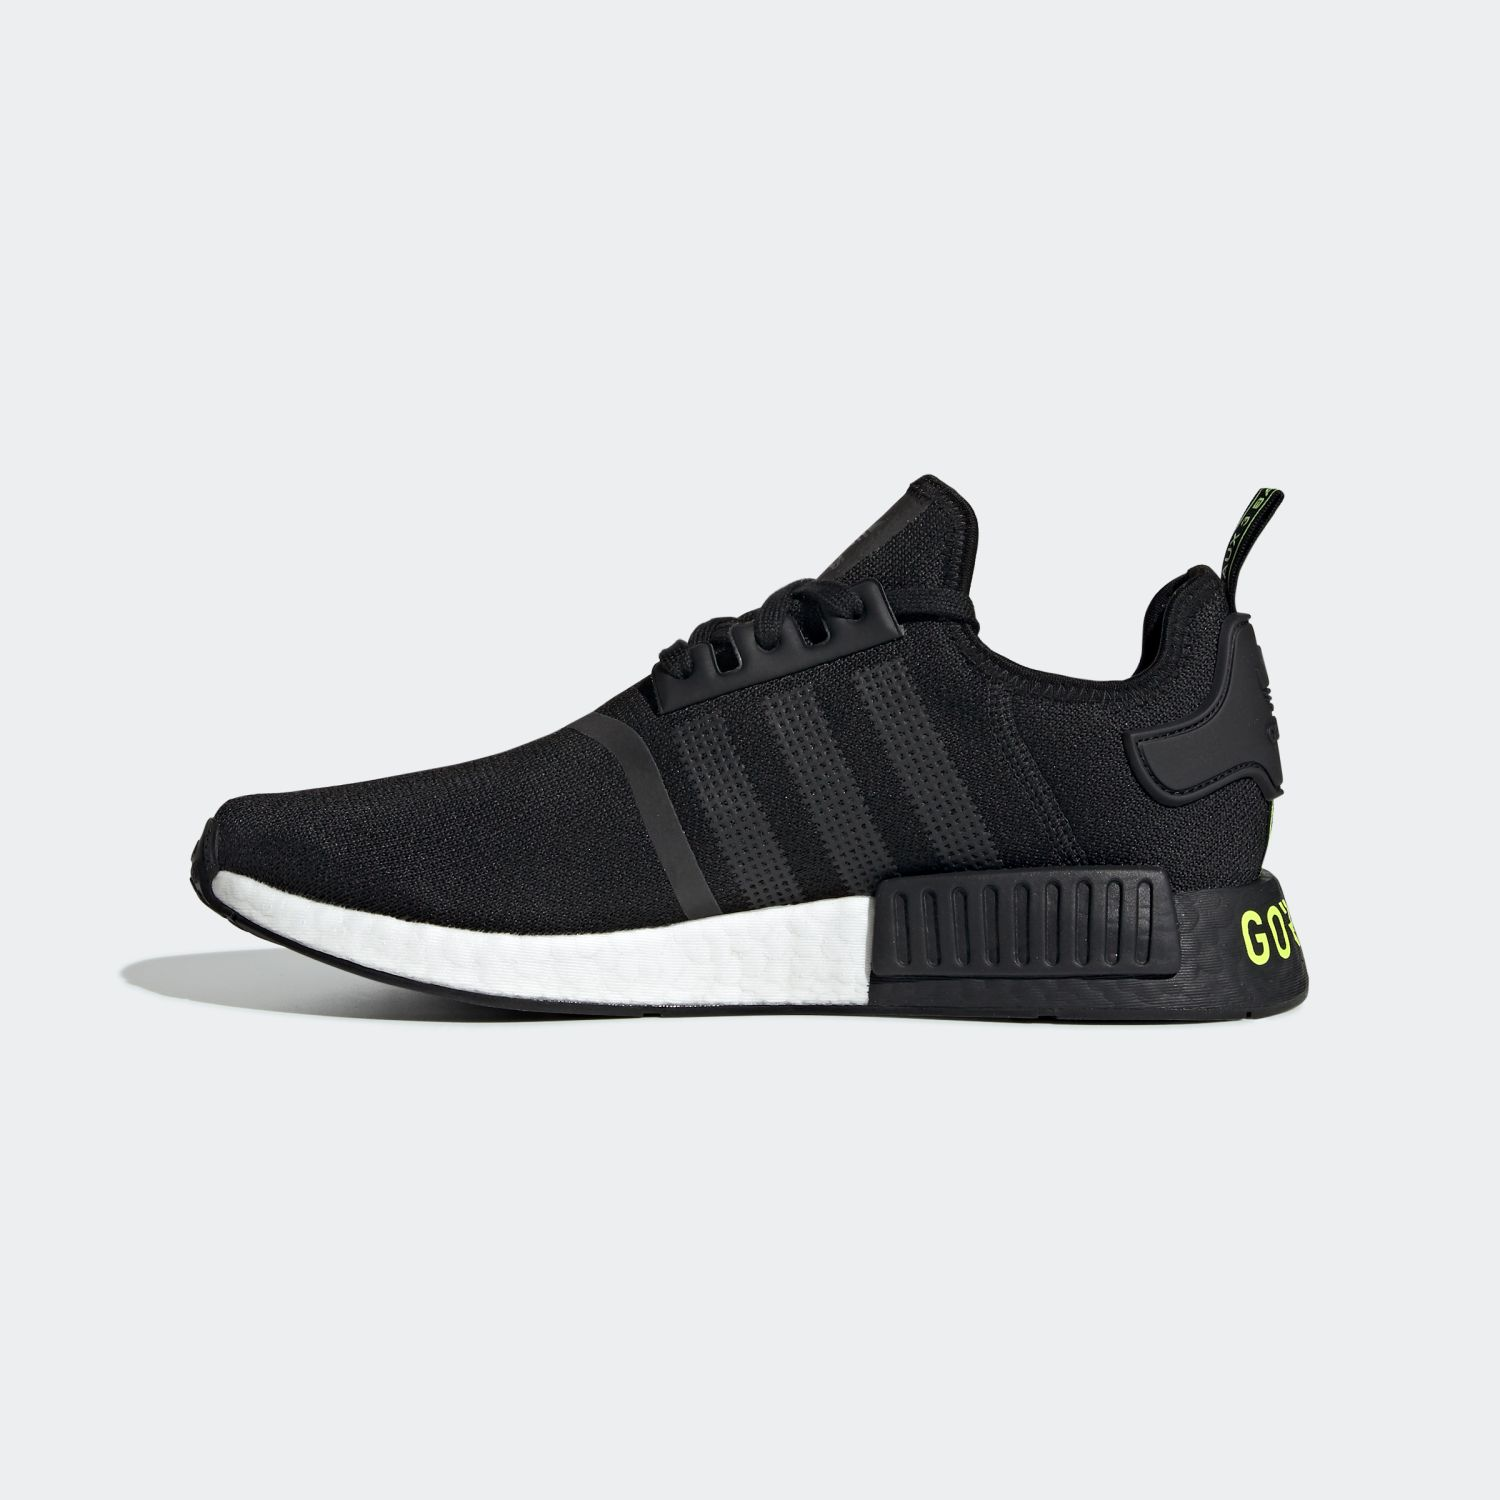 NMD R1 Gore-tex Core Black Solar Yellow [2]